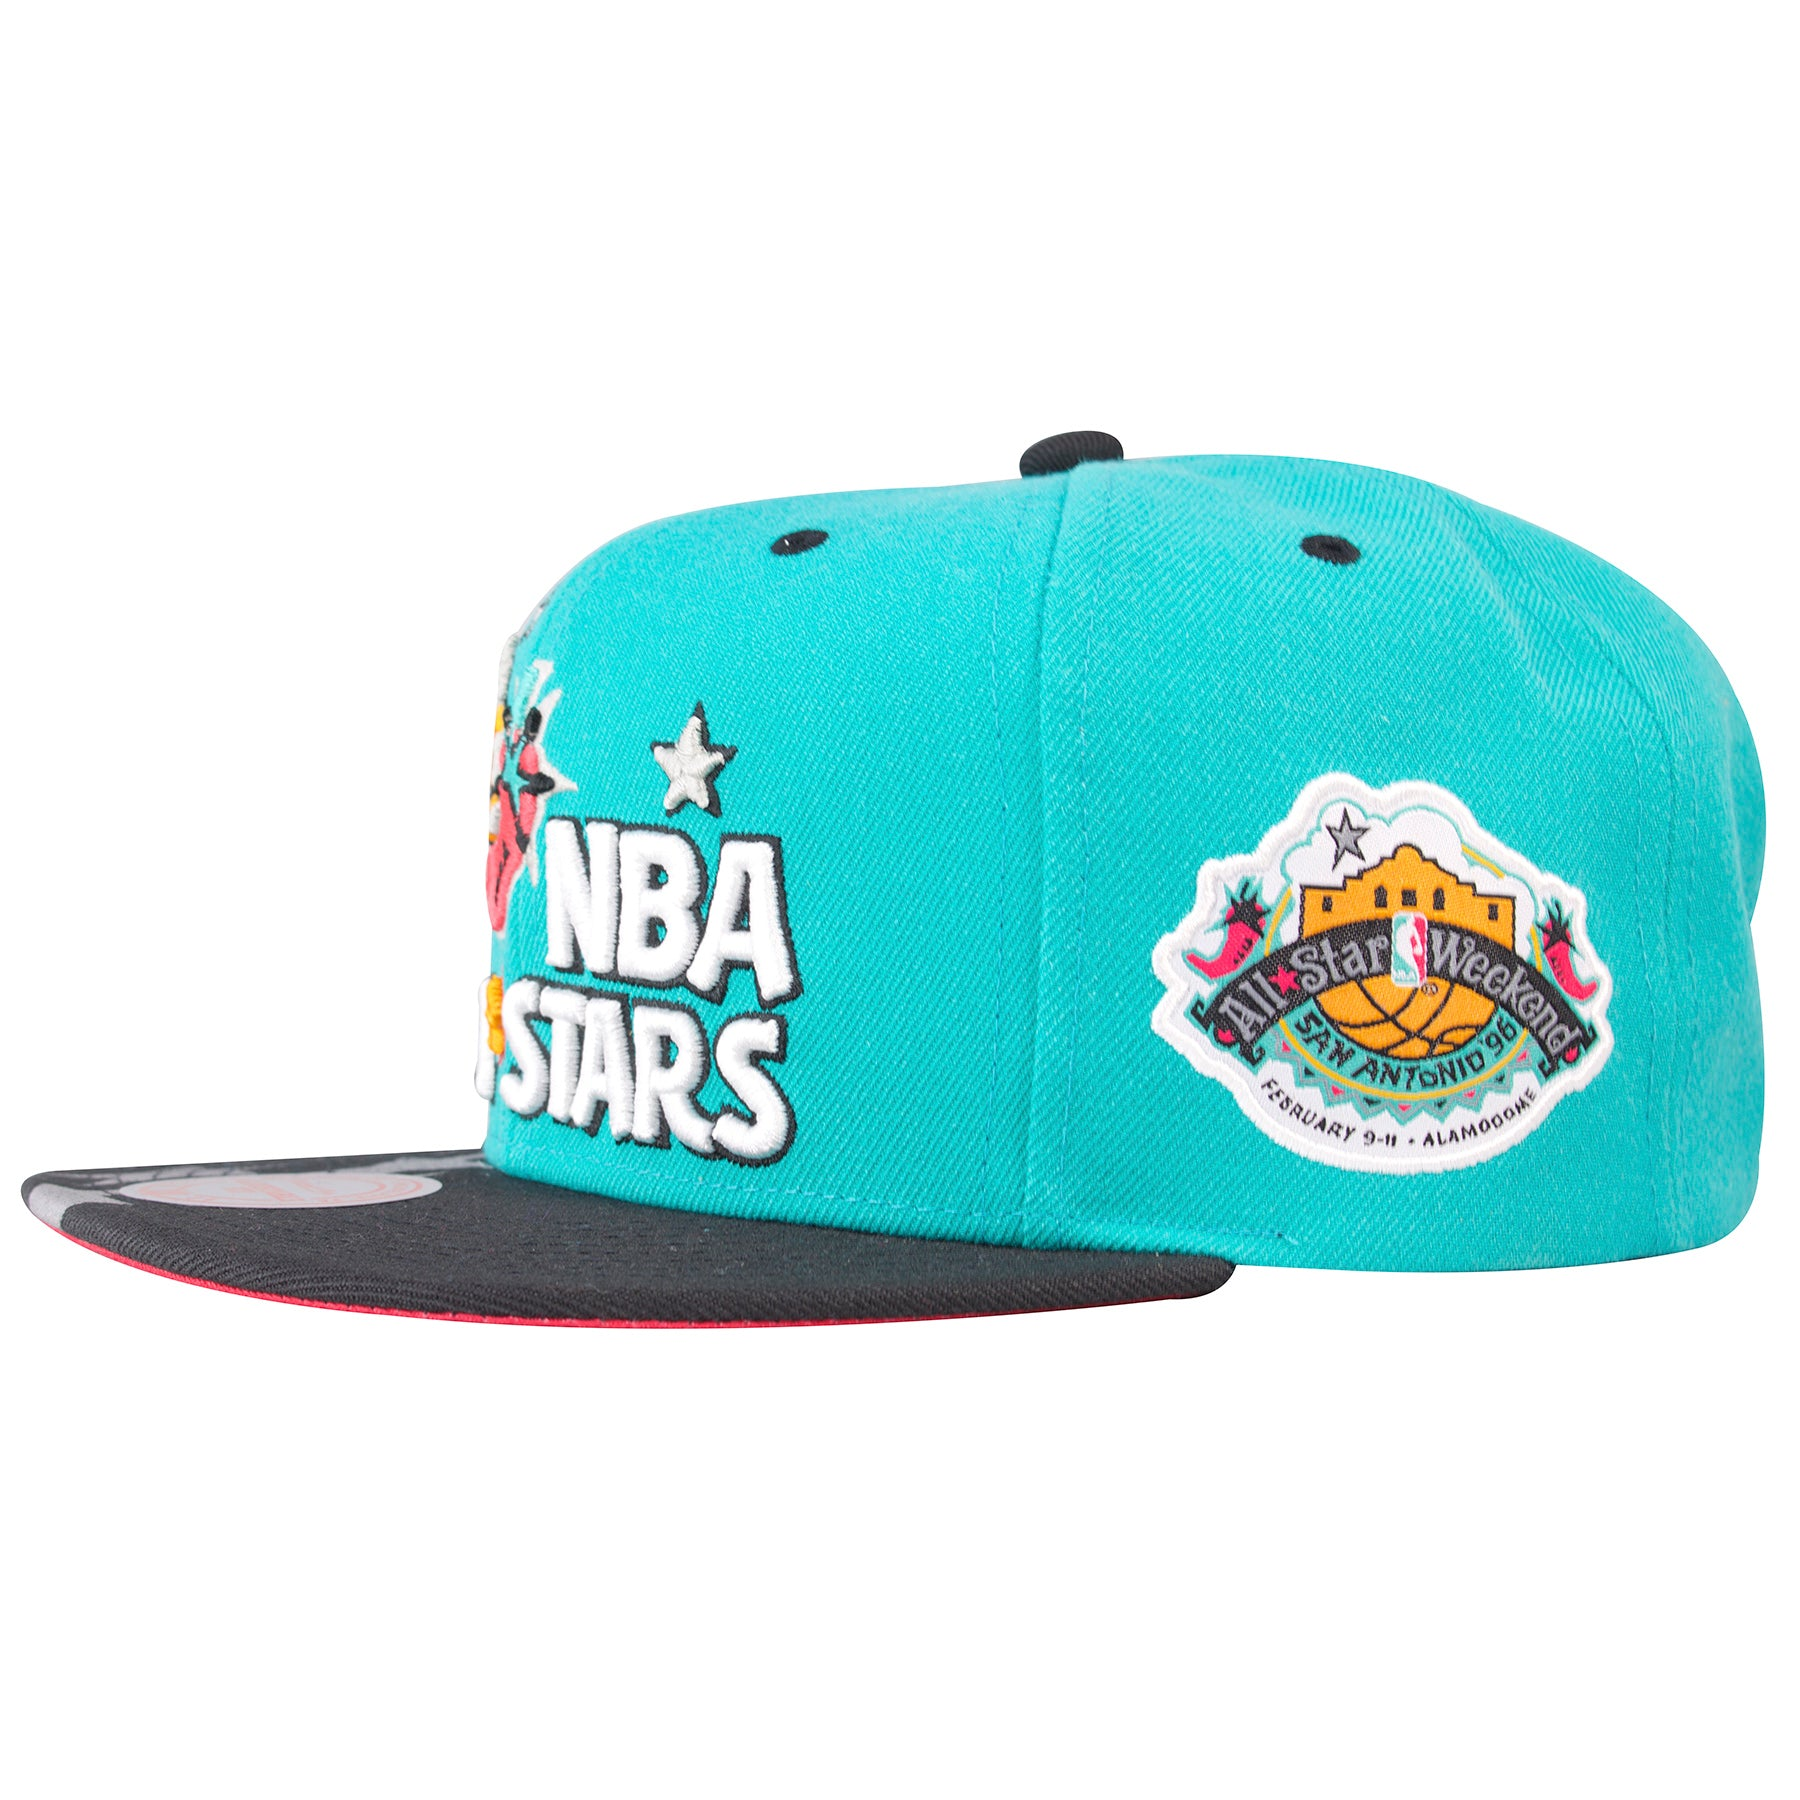 sale retailer 7878c 49811 ... on the left side of the 1996 nba all star game snapback hat is the 1996  ...